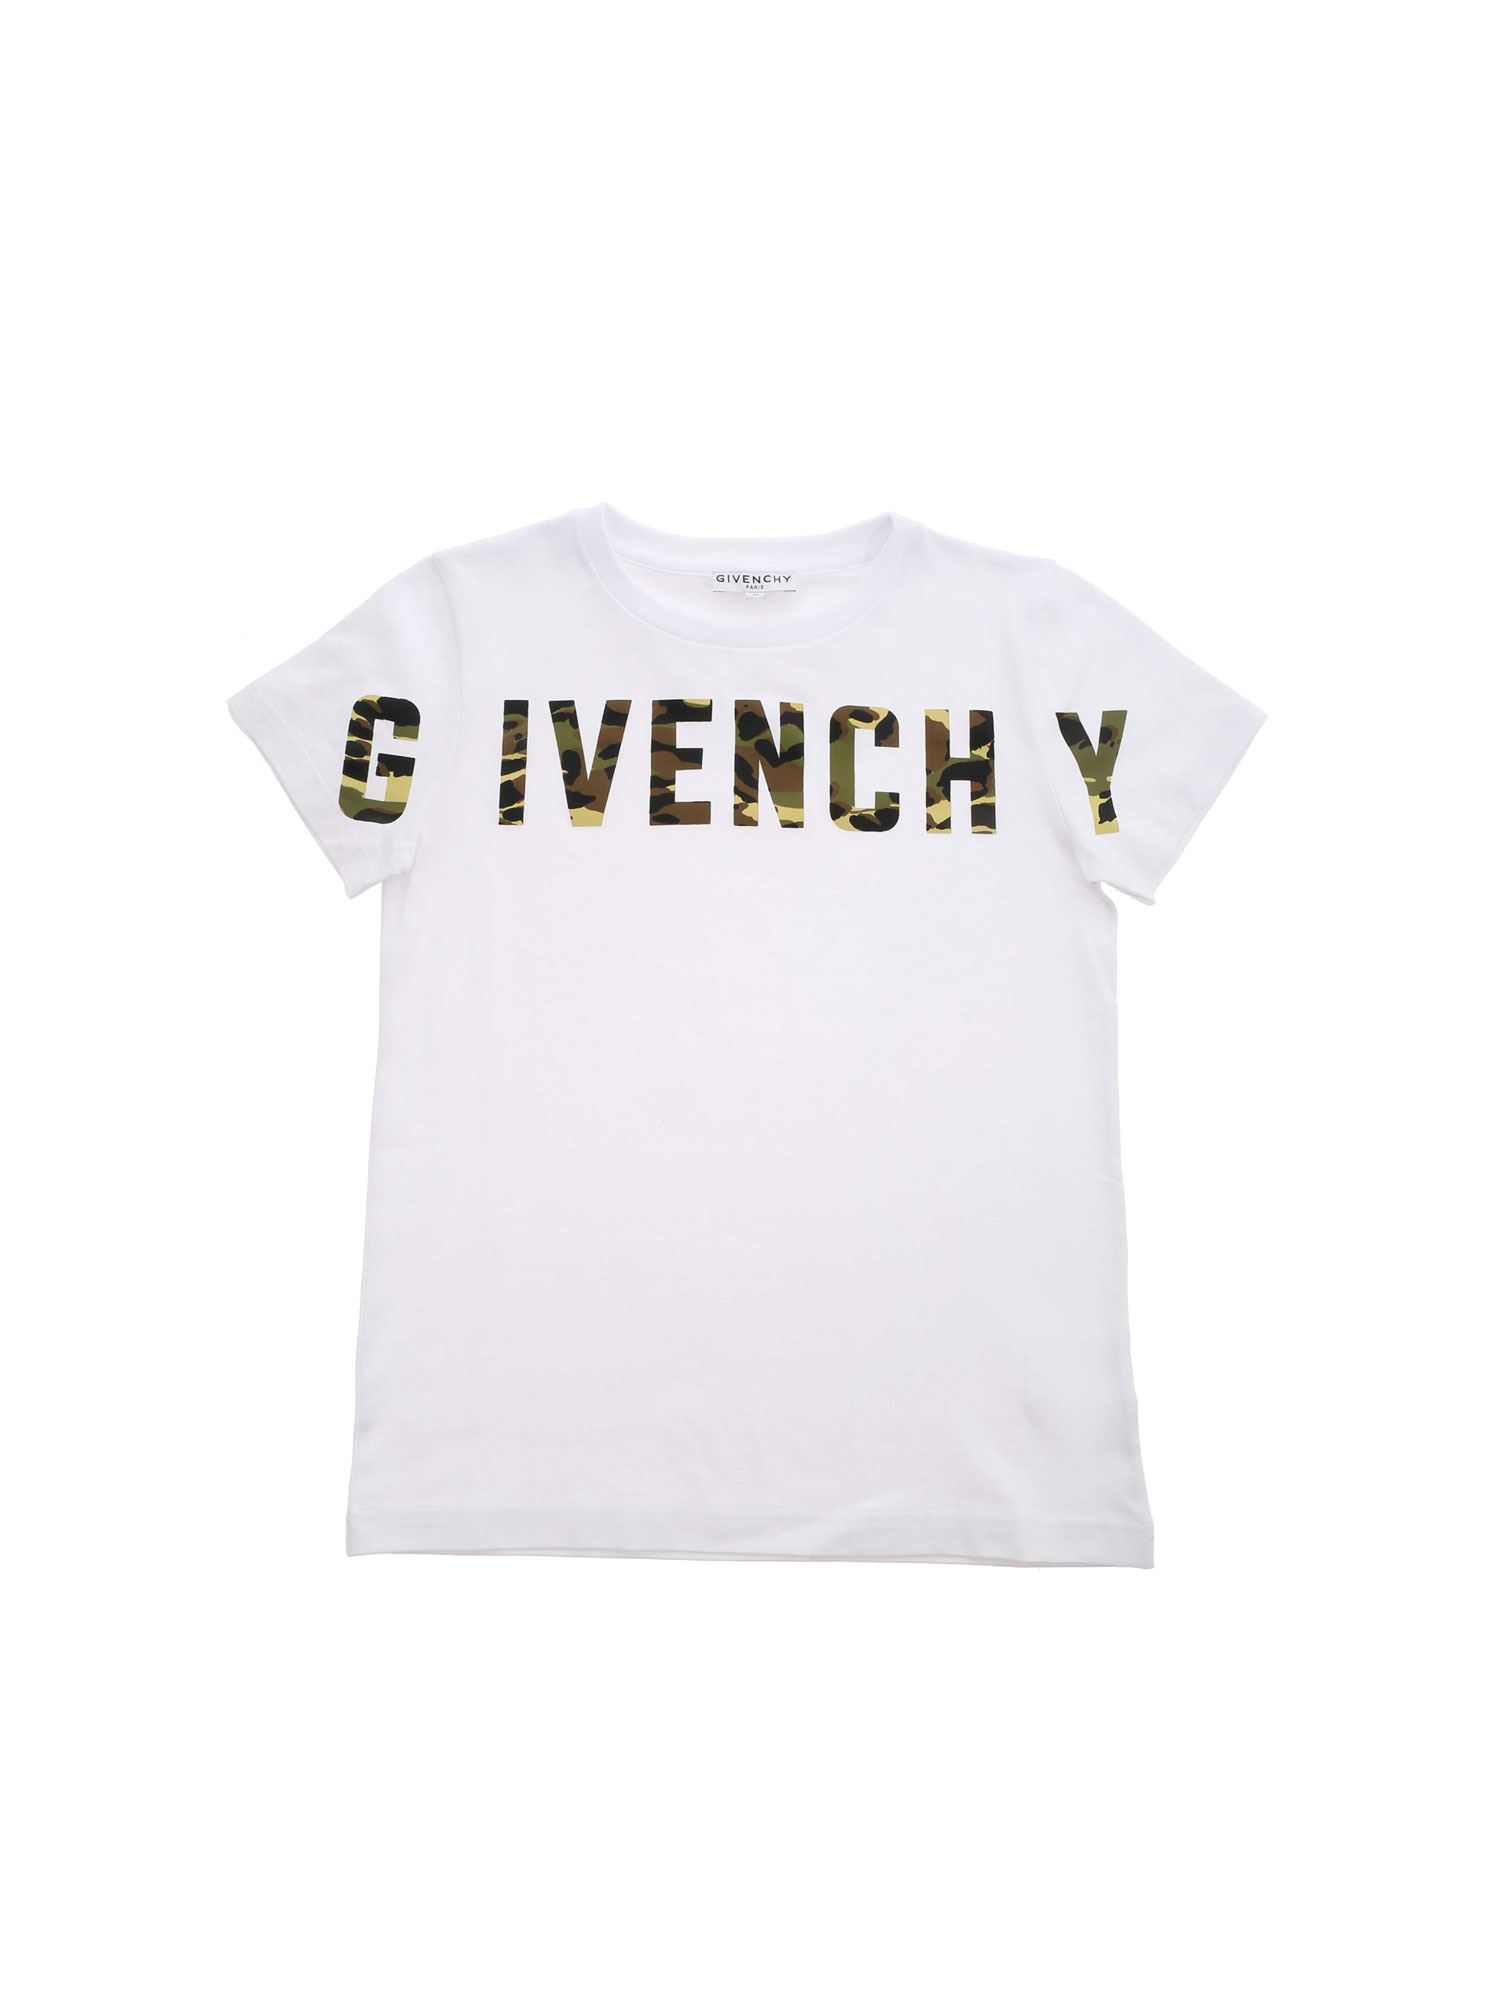 Givenchy CAMOUFLAGE LOGO PRINT T-SHIRT IN WHITE